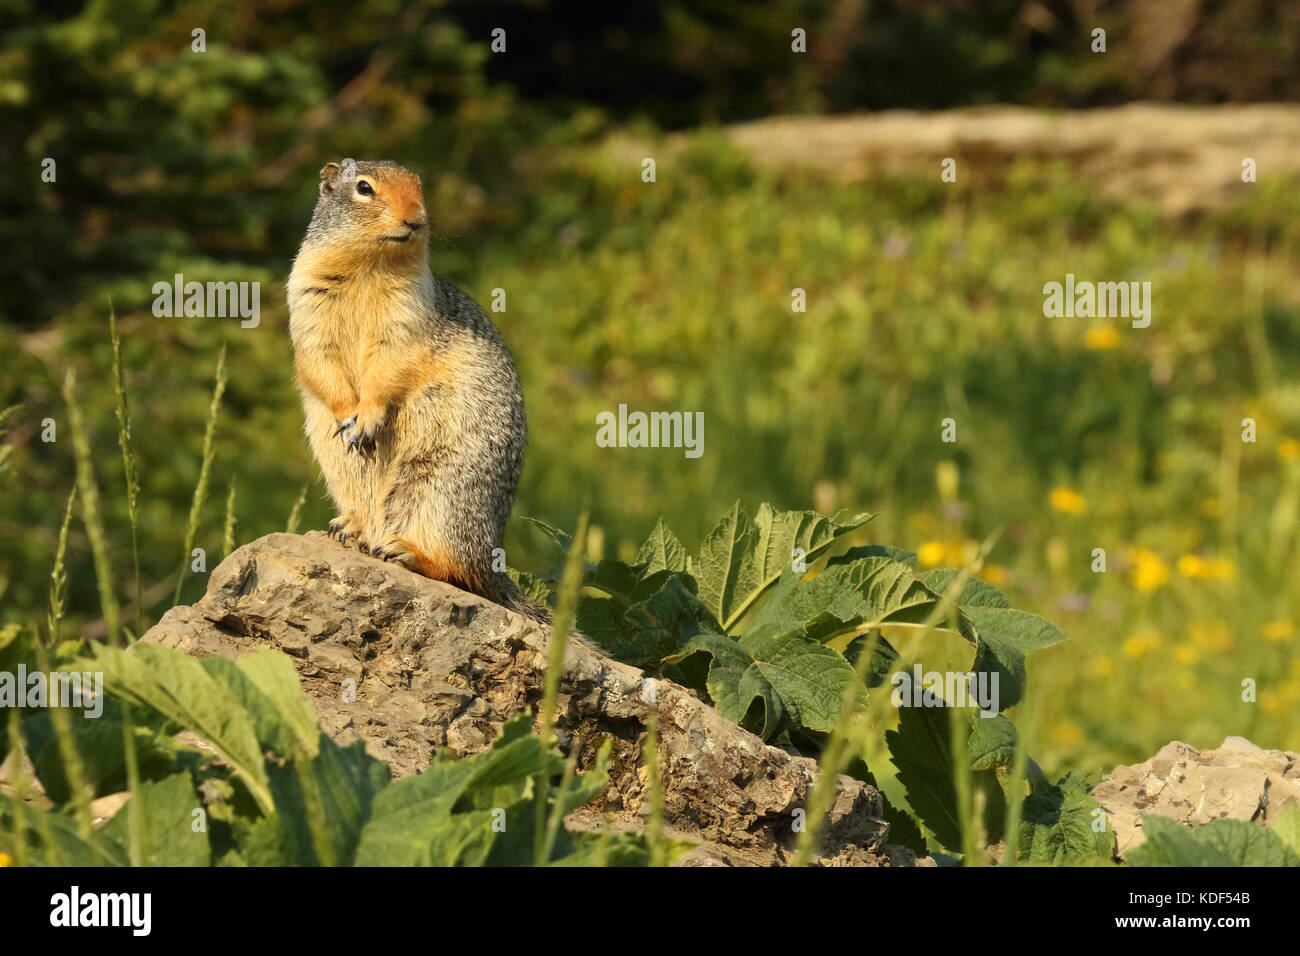 A Columbian Ground Squirrel pausing atop a rock in Glacier National Park. - Stock Image